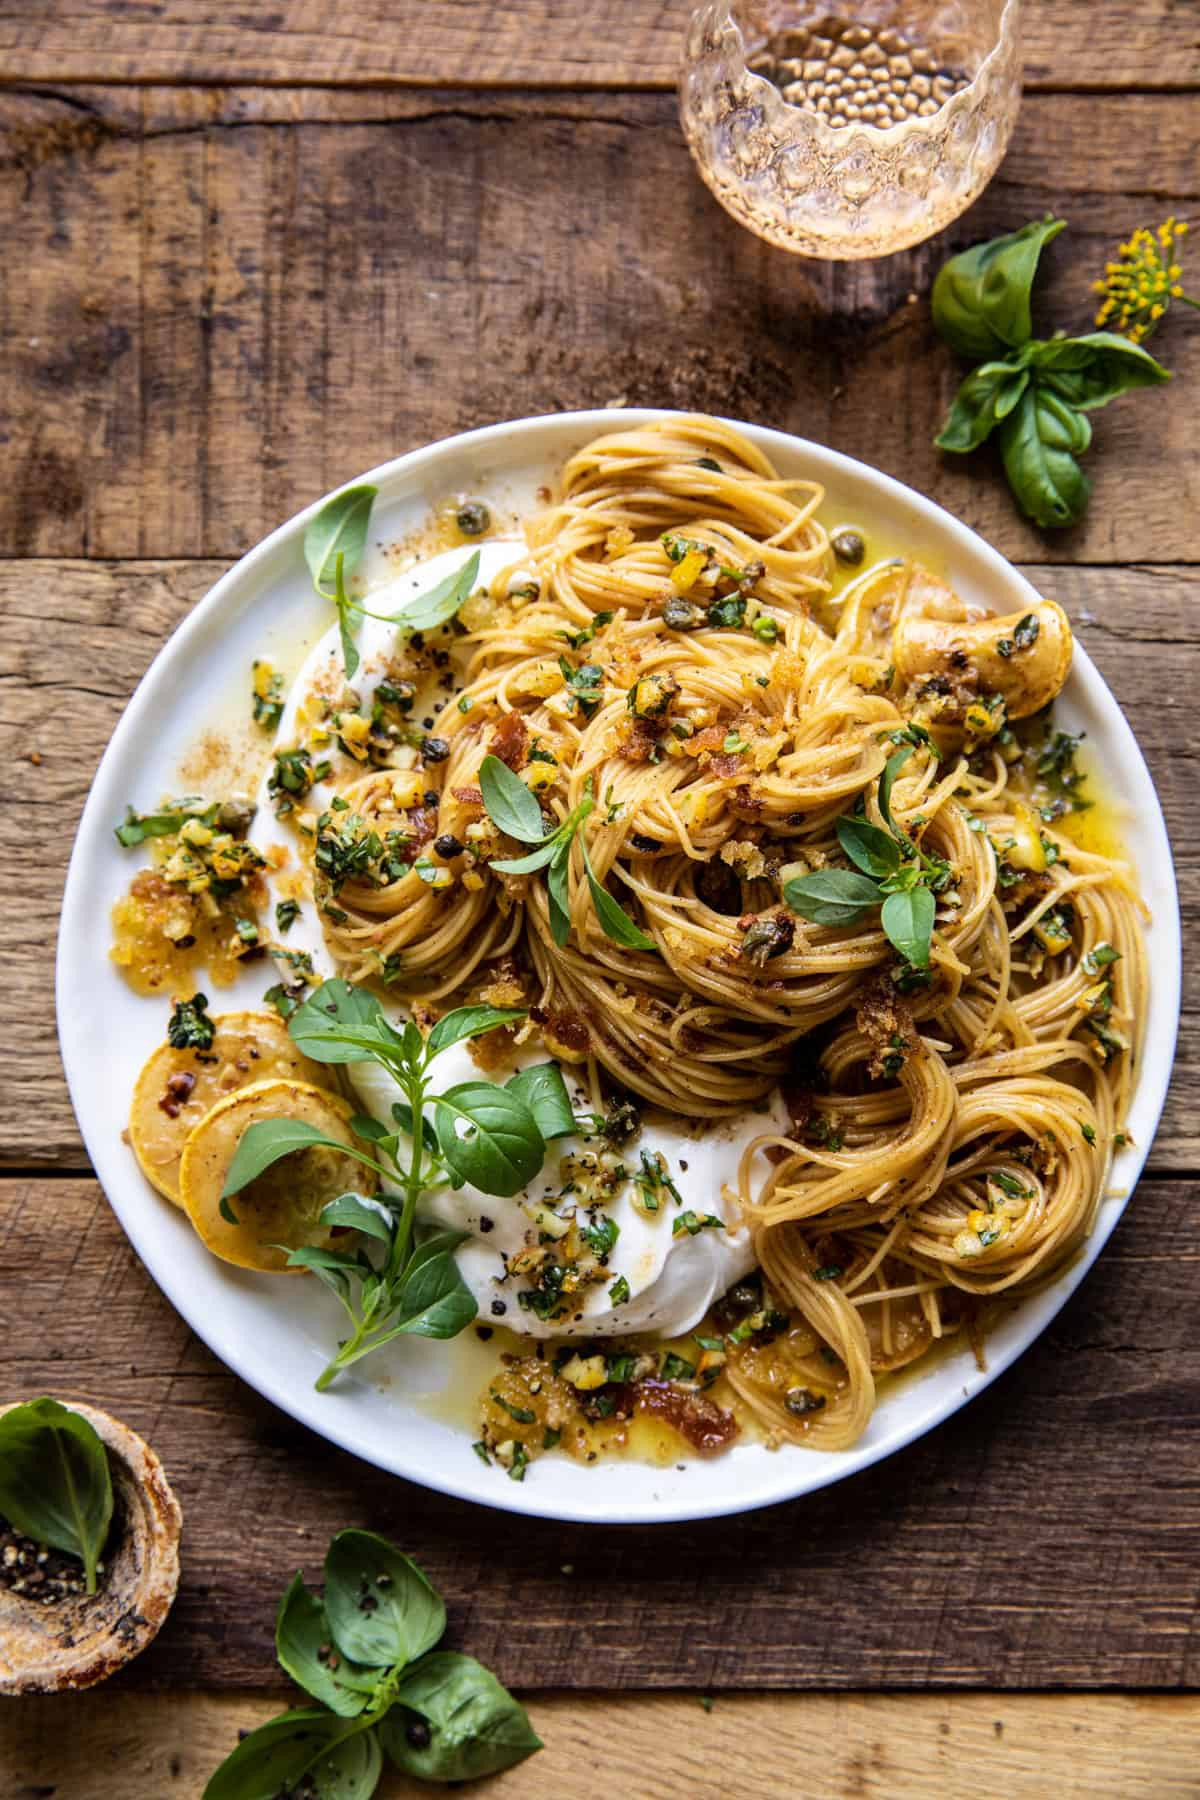 20-Minute-Lemon-Butter-Pasta-with-Ricotta-and-Spicy-Breadcrumbs-1.jpg